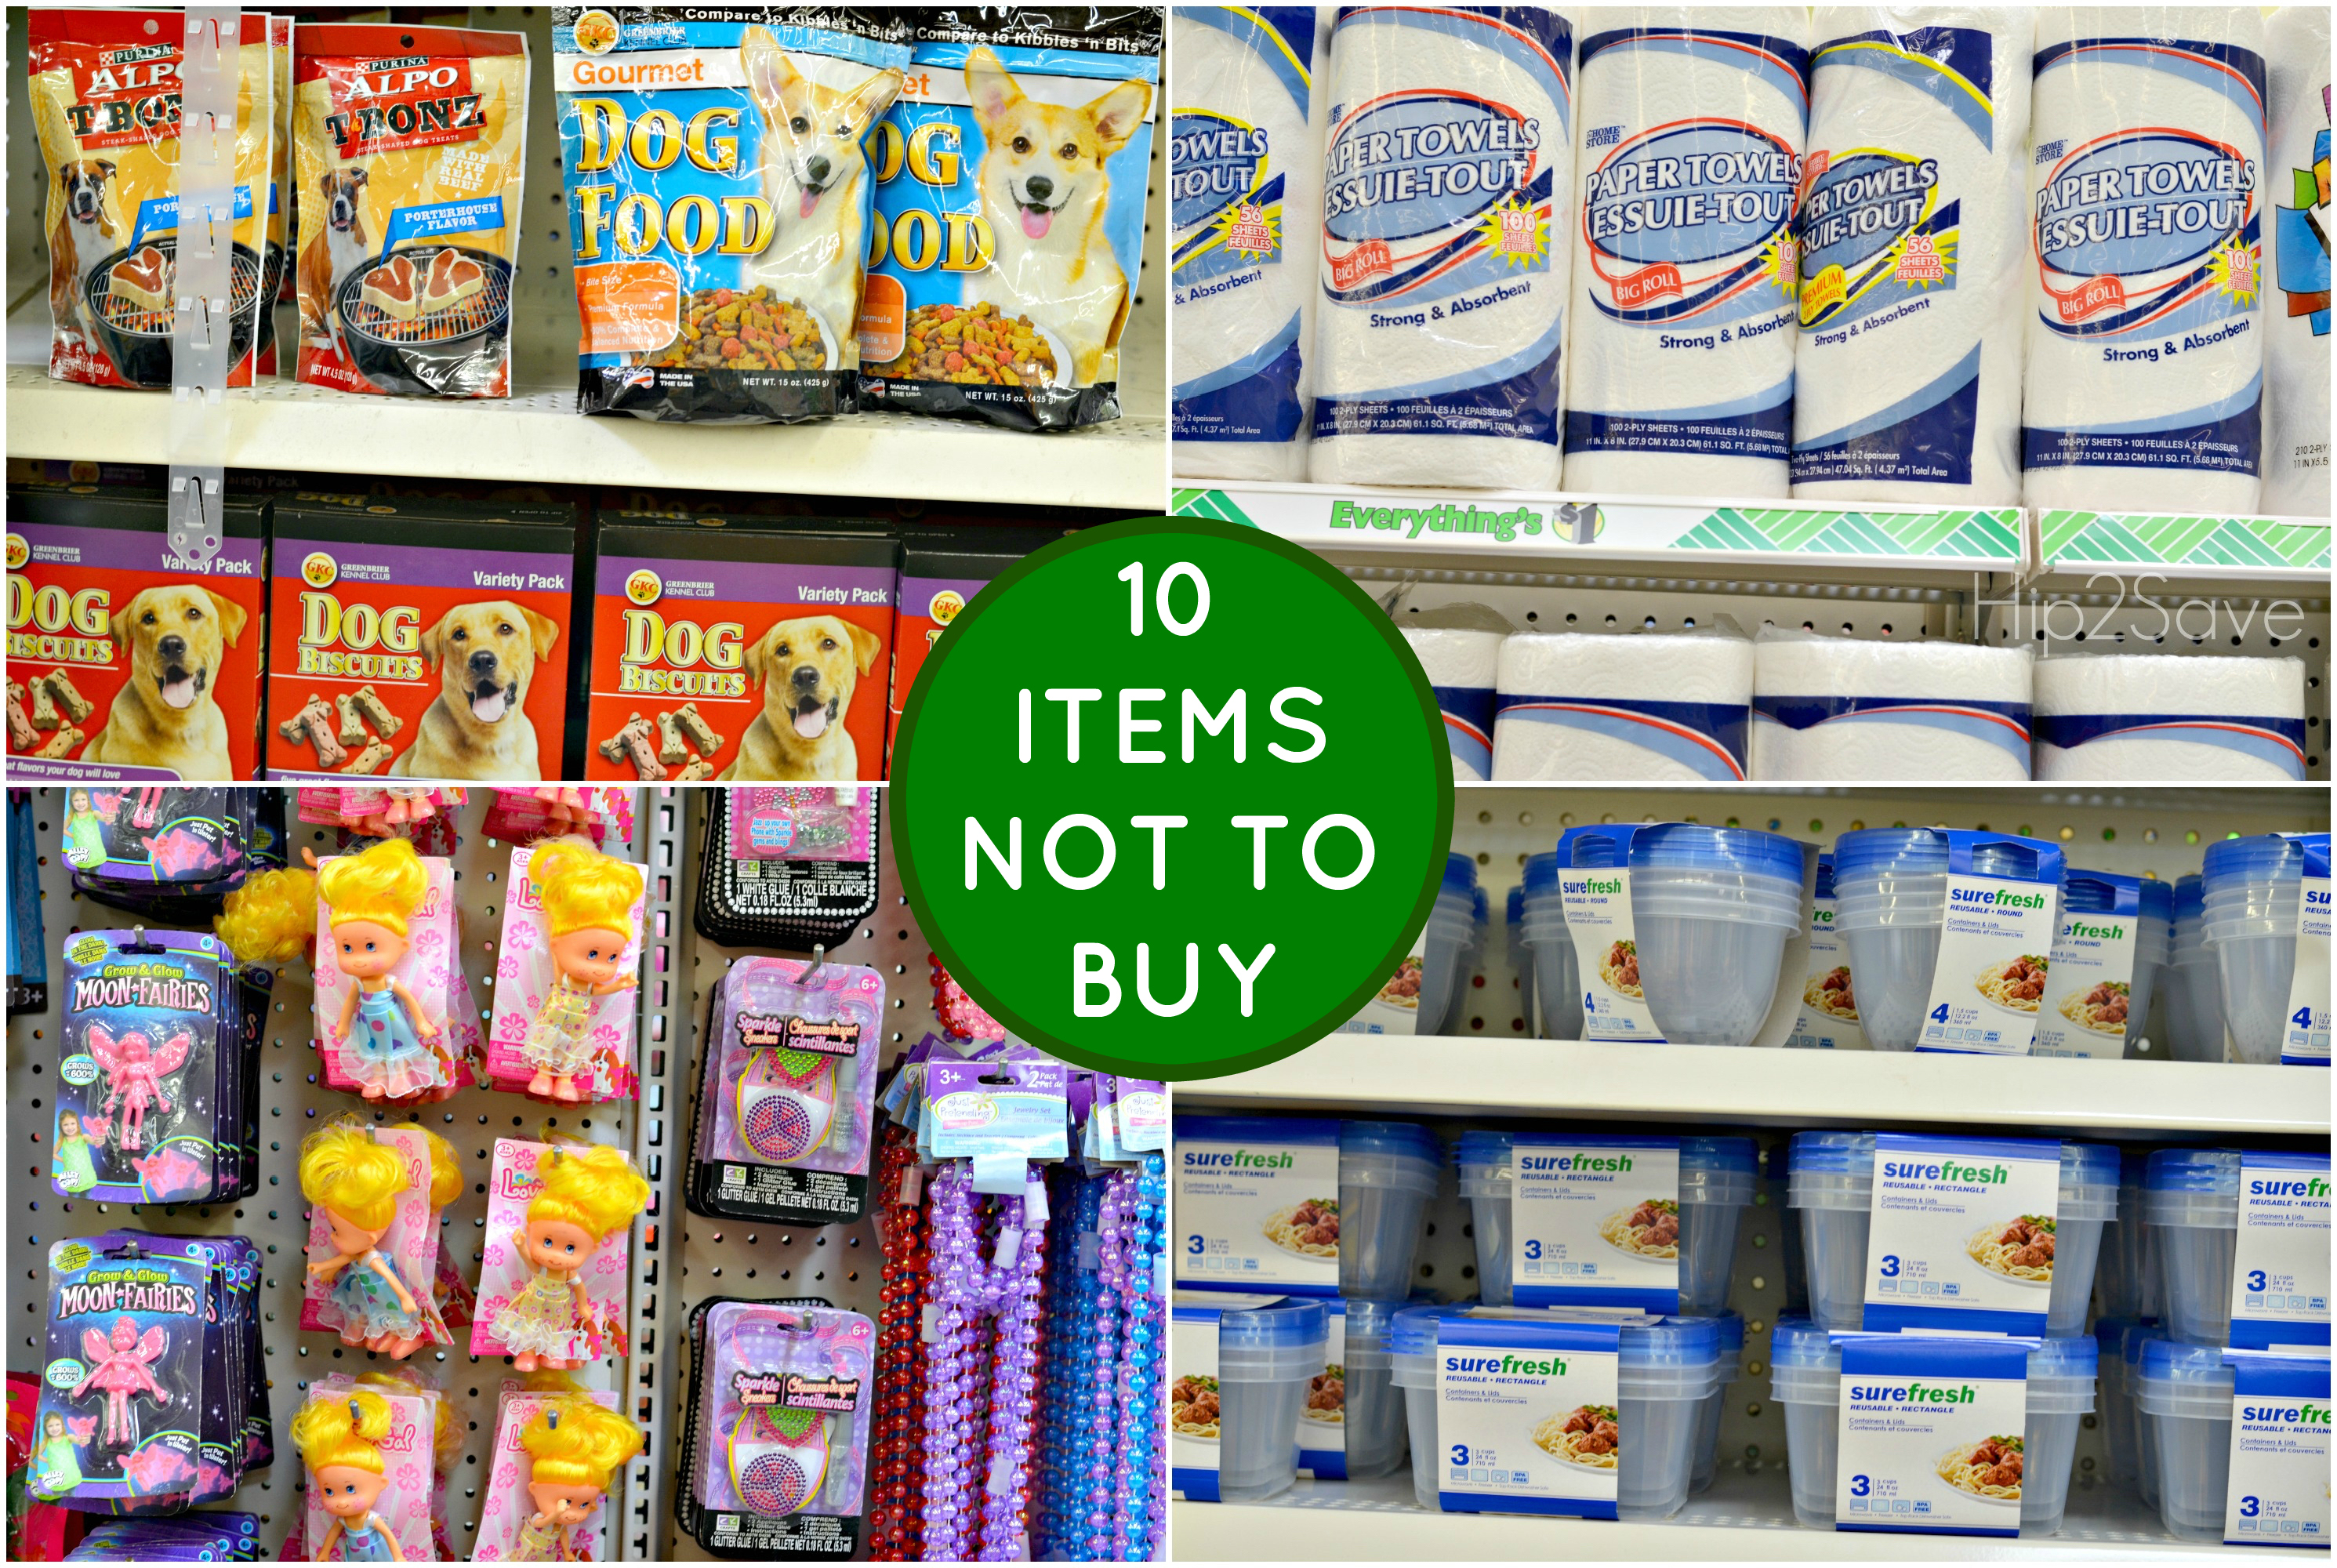 5 Things Not to Buy at Drugstores